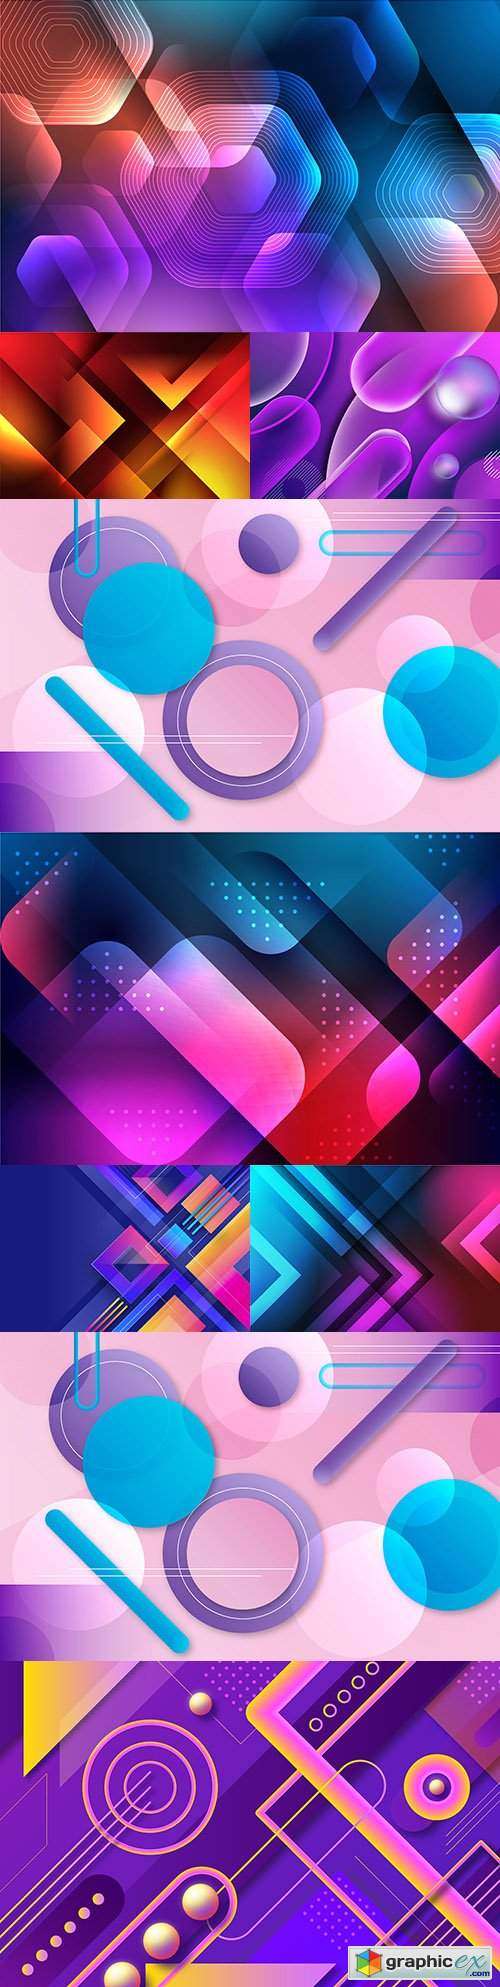 Gradient abstract design geometric background shape 2